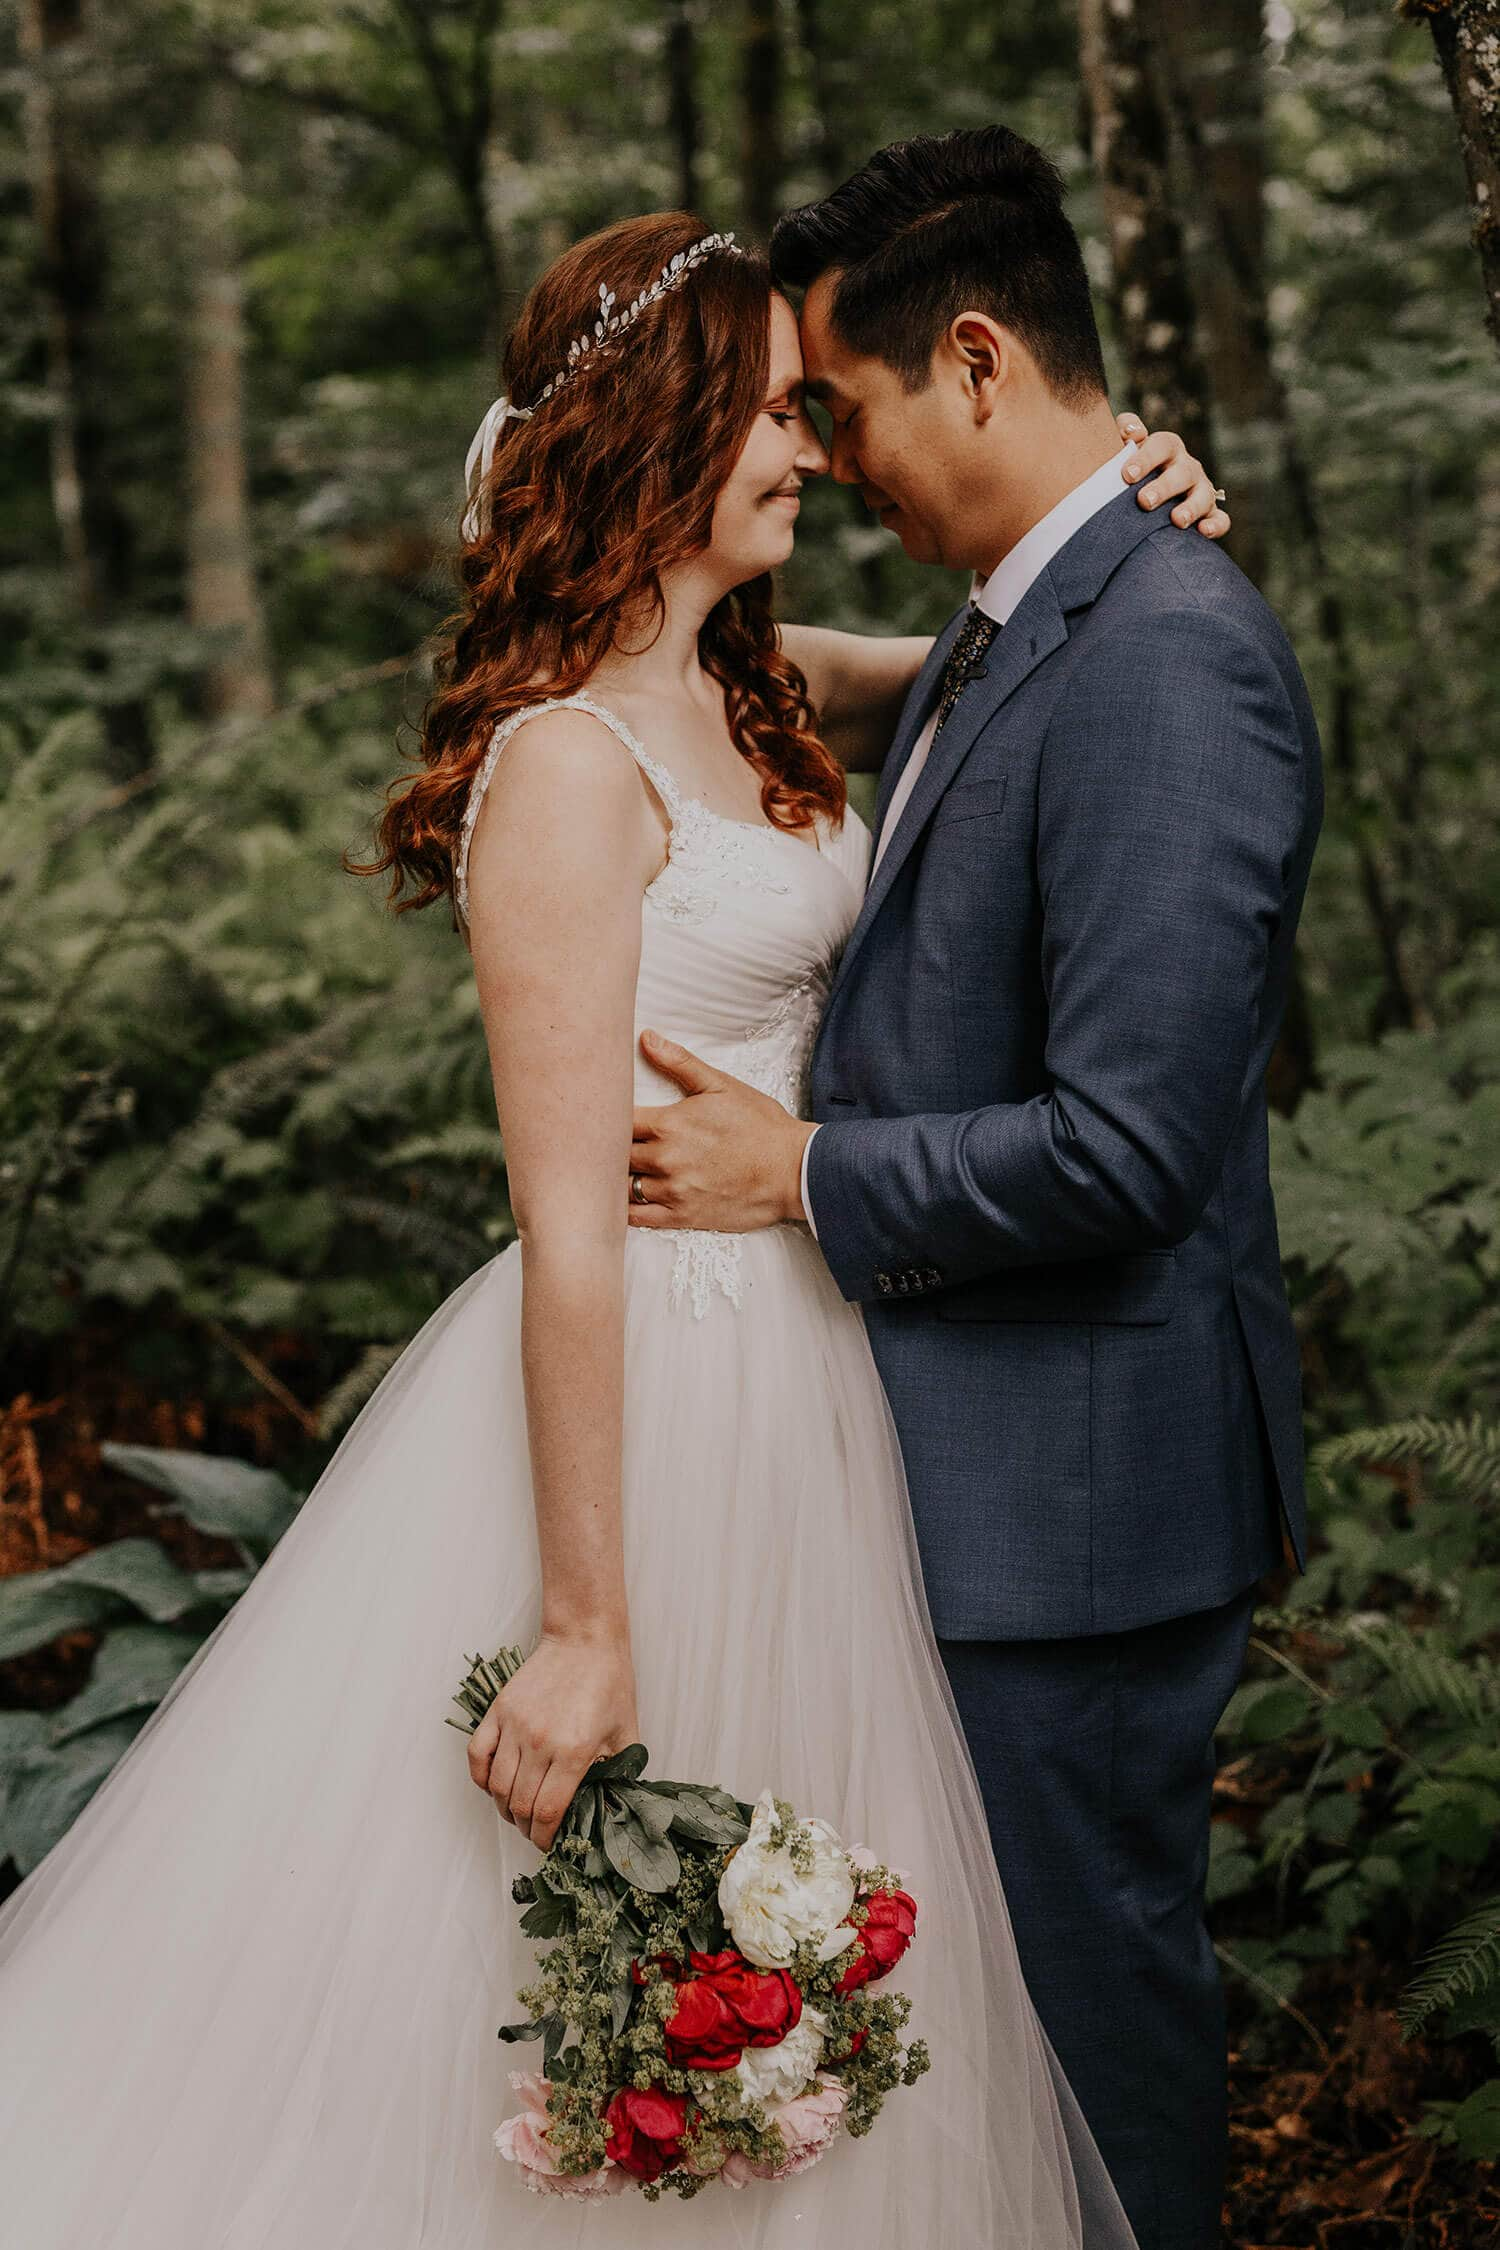 Romantic shot of the bride holding her bouquet, and groom holding her in his arms on a backyard of their house